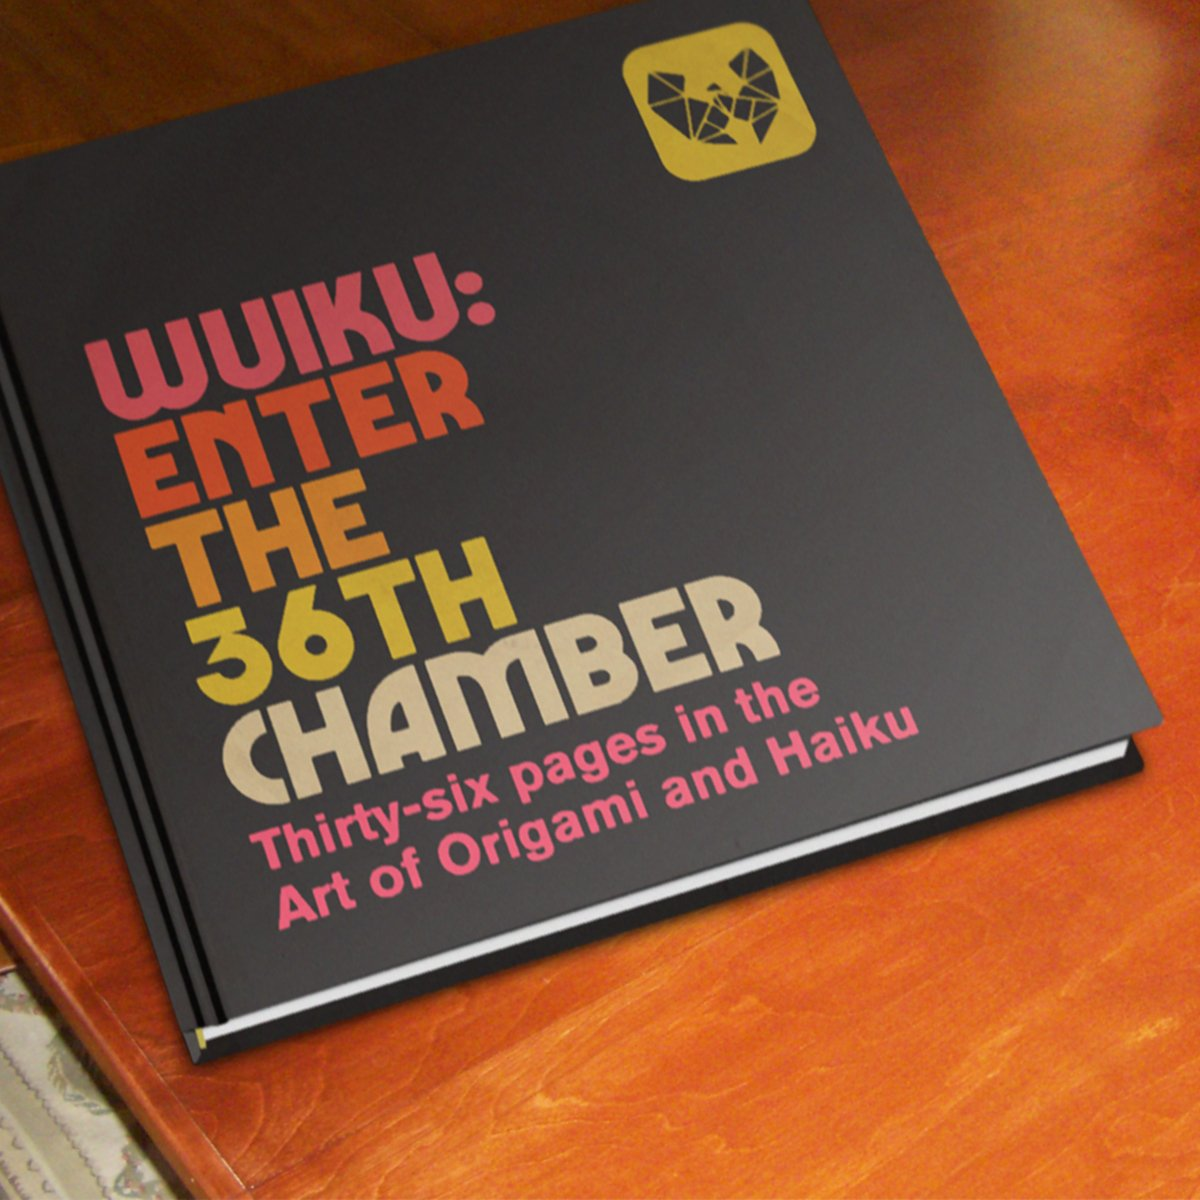 Square mock up of the Wuiku: Enter The 36th Chamber Book